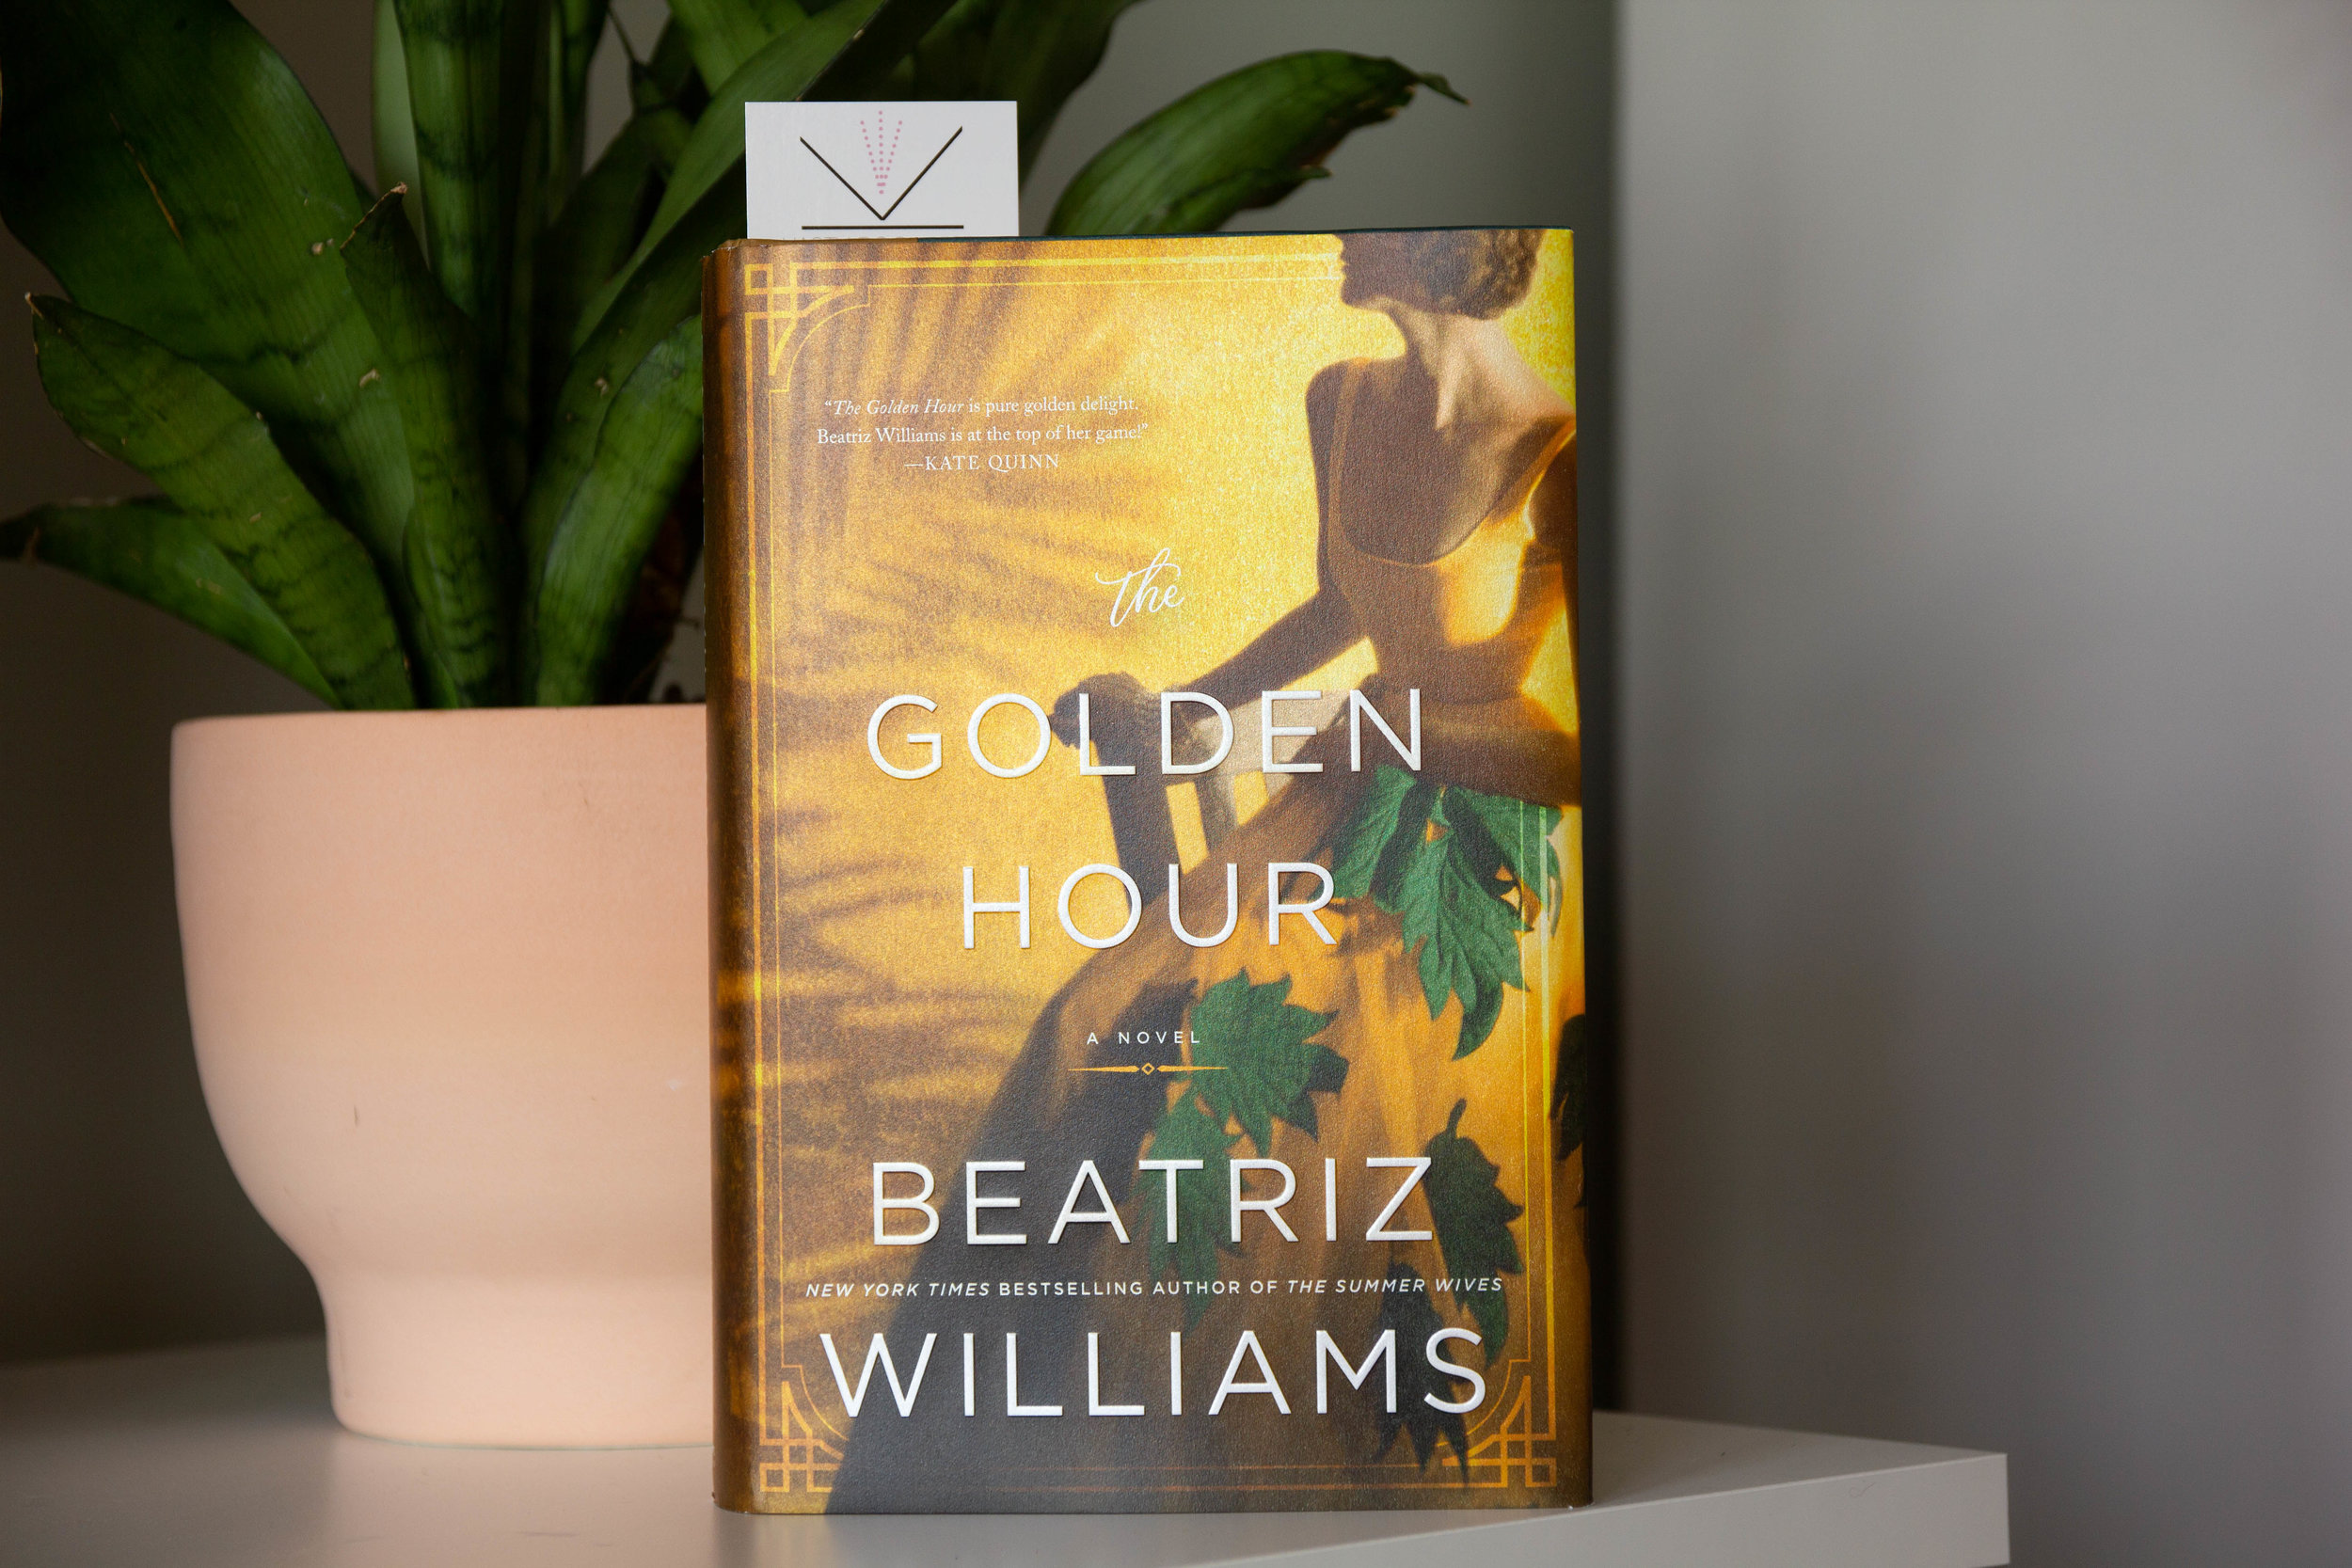 Book Review - The Golden Hour by Beatriz Williams